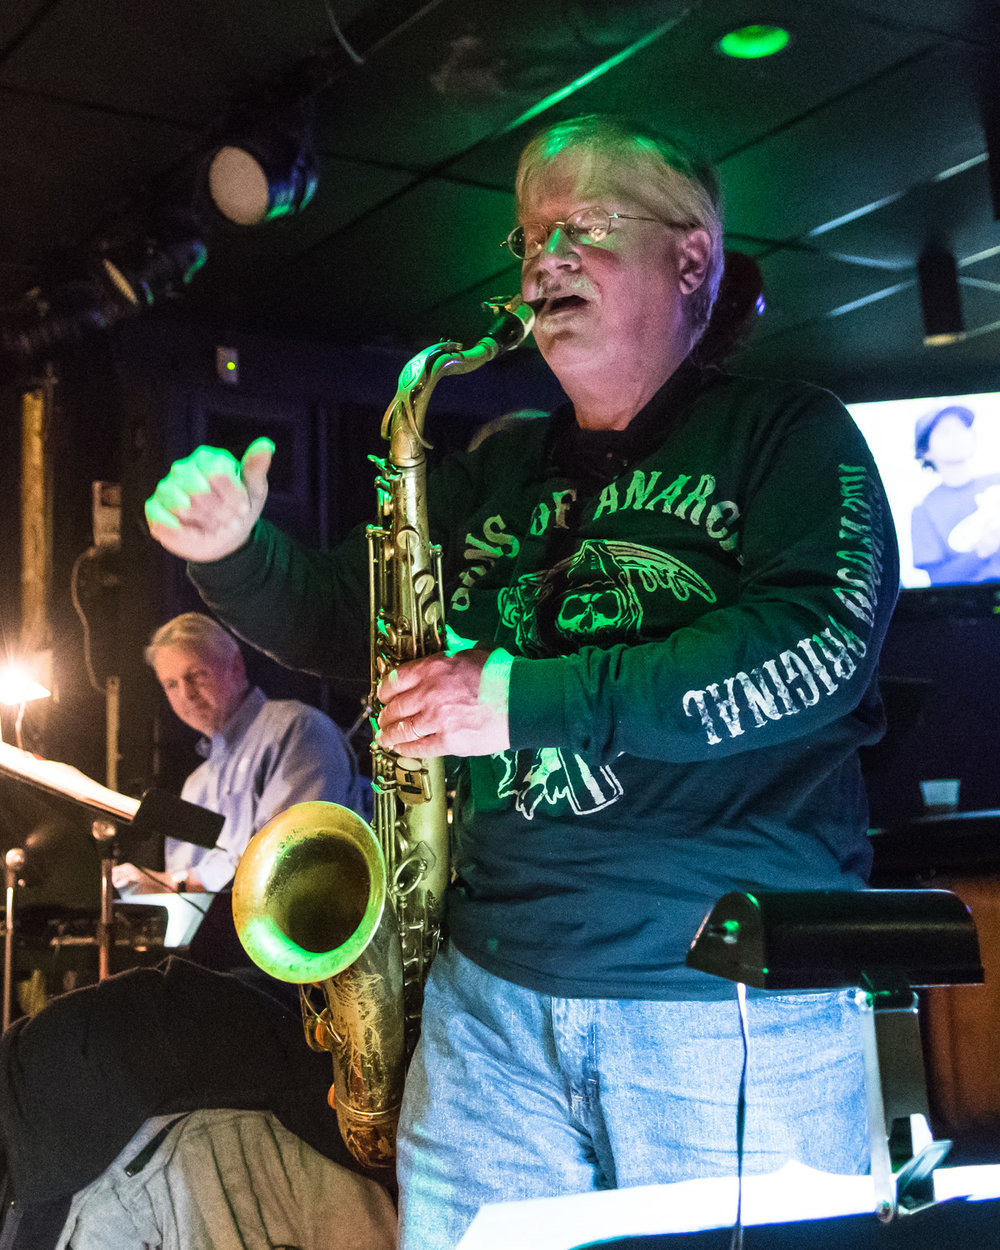 Tenner Saxophone Patrick Odell signals the band to finish playing at The Parkside Reunion Big Band's bi-weekly performance April 4 at McAuliffe's Pub.